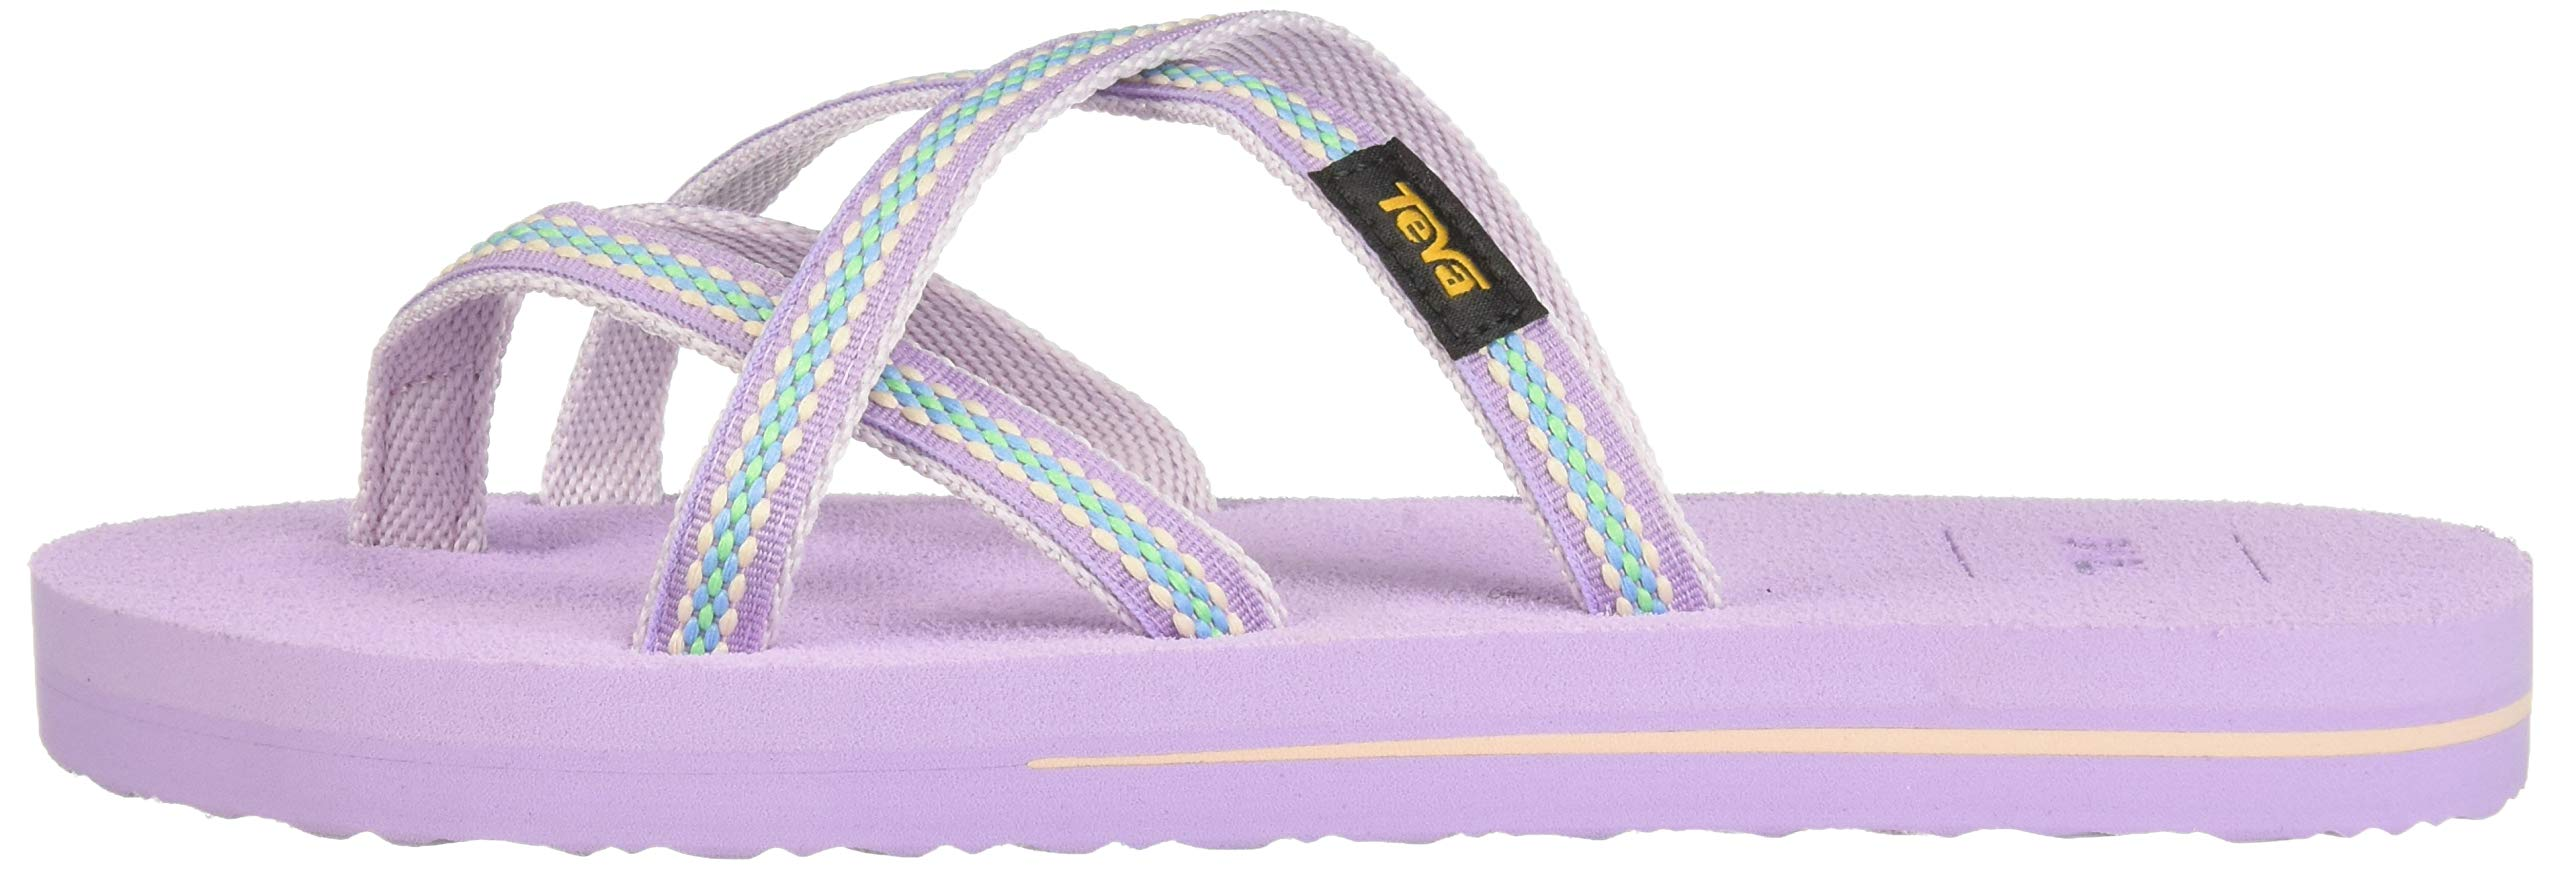 Teva Girls' Y Olowahu Sport Sandal, Lindi Orchid Bloom, 7 Medium US Big Kid by Teva (Image #5)